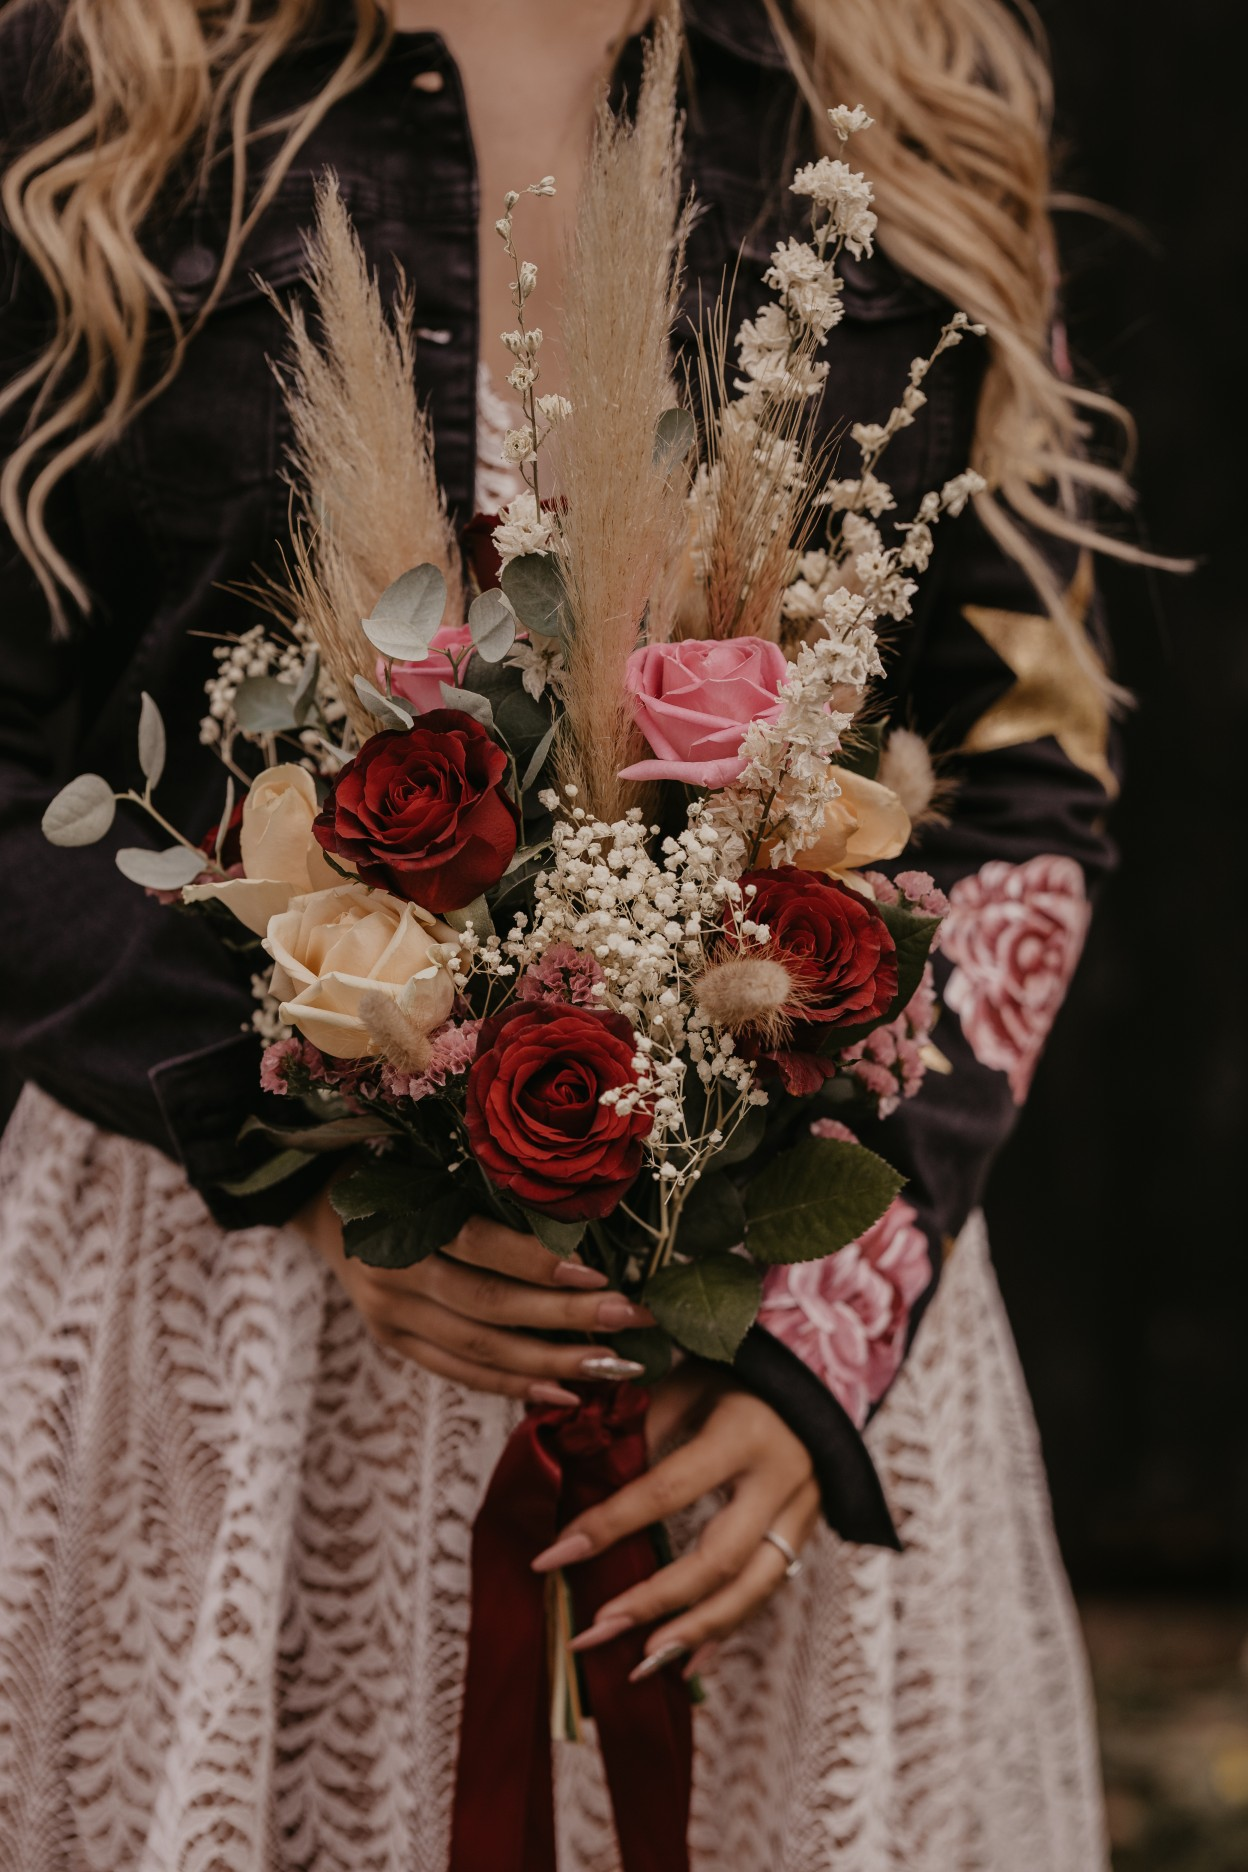 wedding bouquet of roses and dried stems - unique wedding bouquet